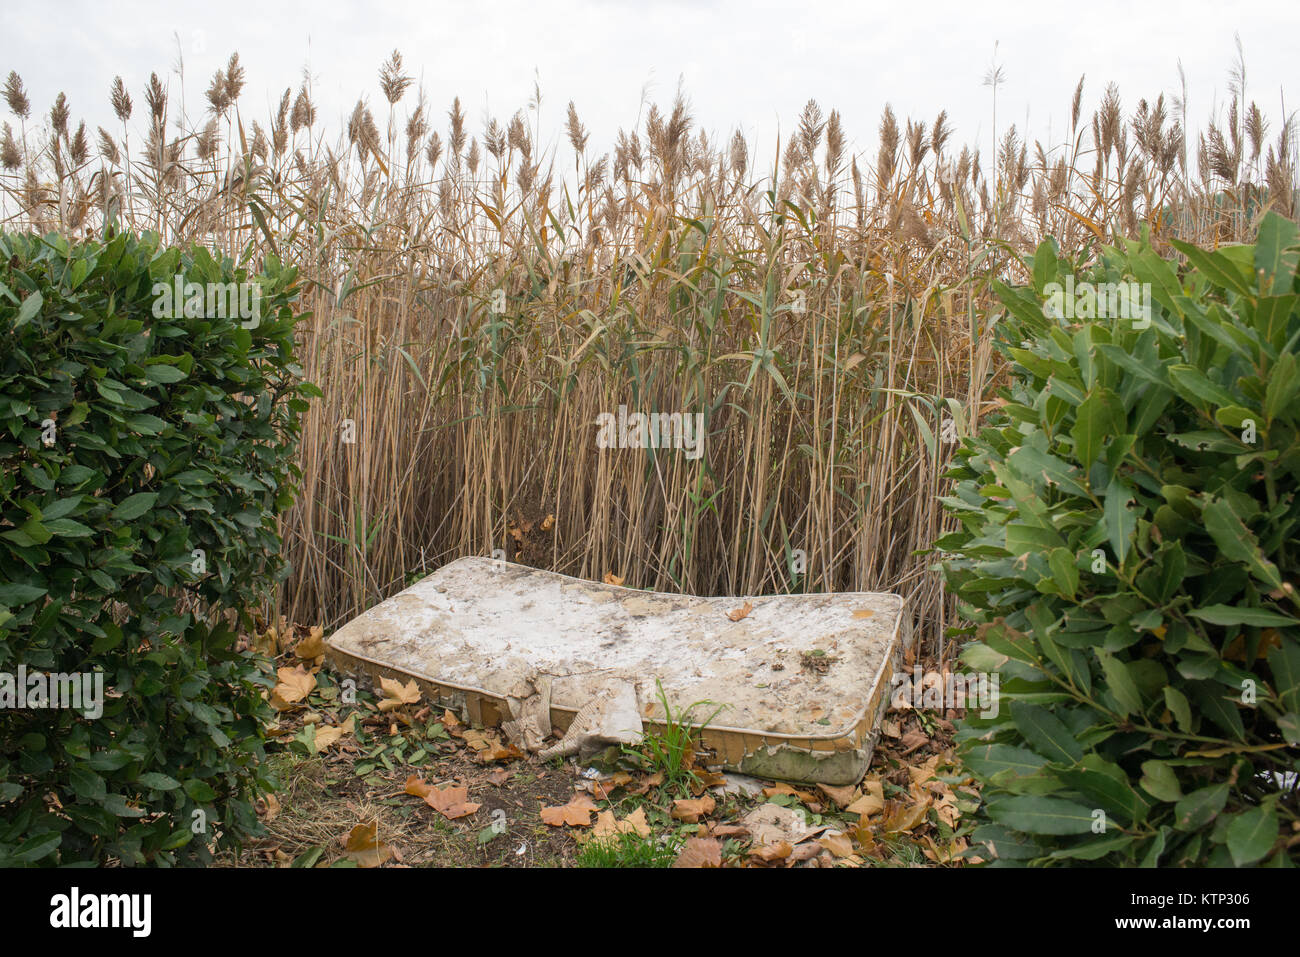 Front view of an old abandoned mattress as waste in a reed thicket on a gray day - Stock Image